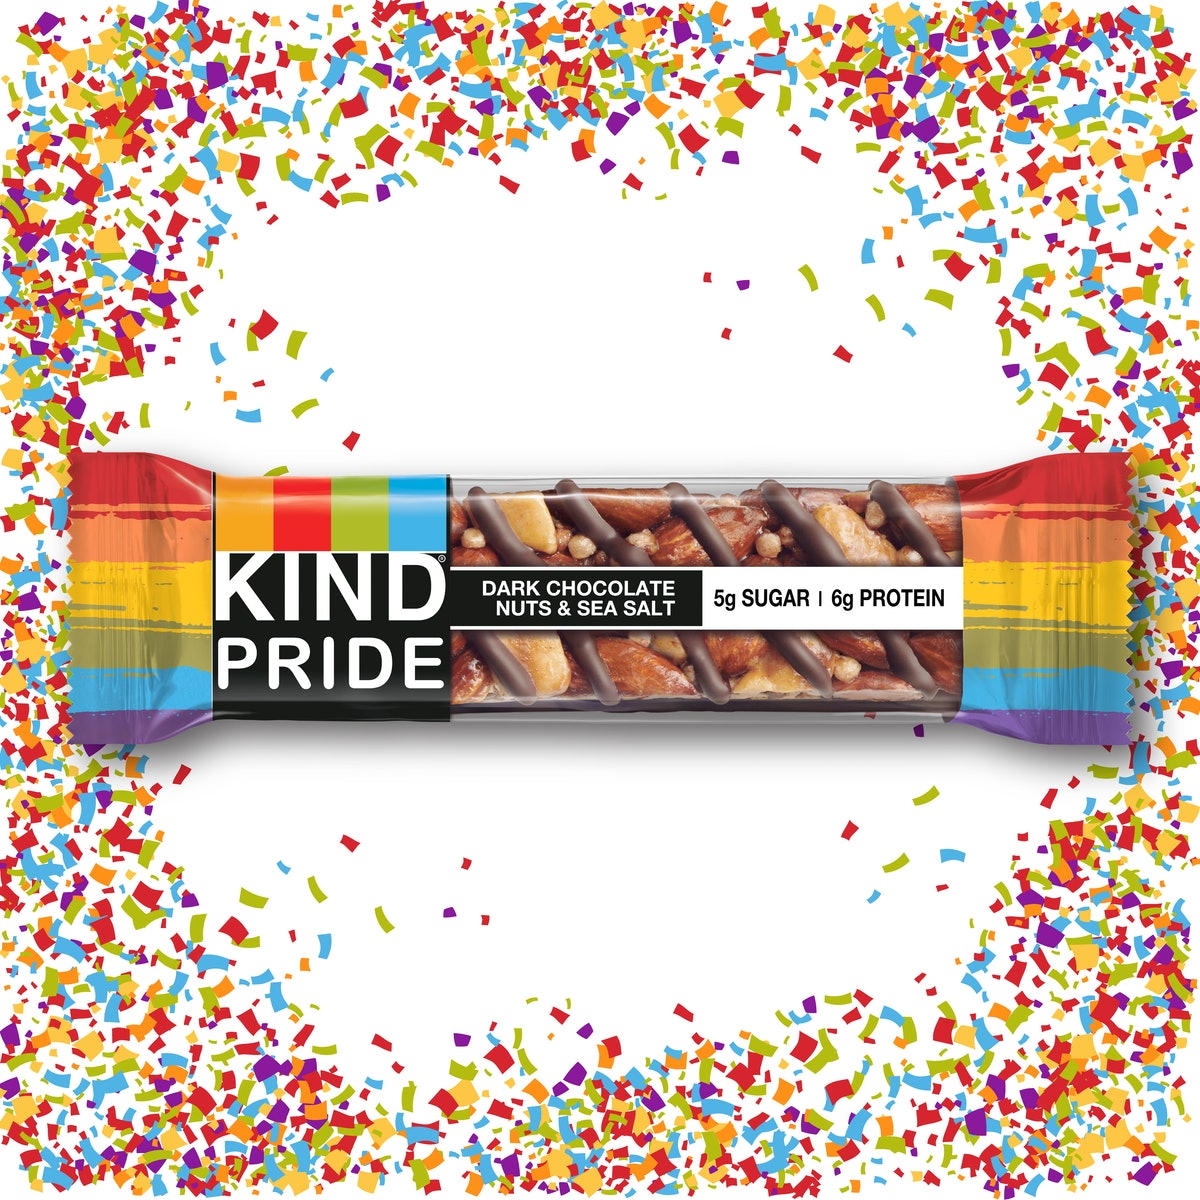 You can buy Kind Pride Bars for 2020 both online and in stores.